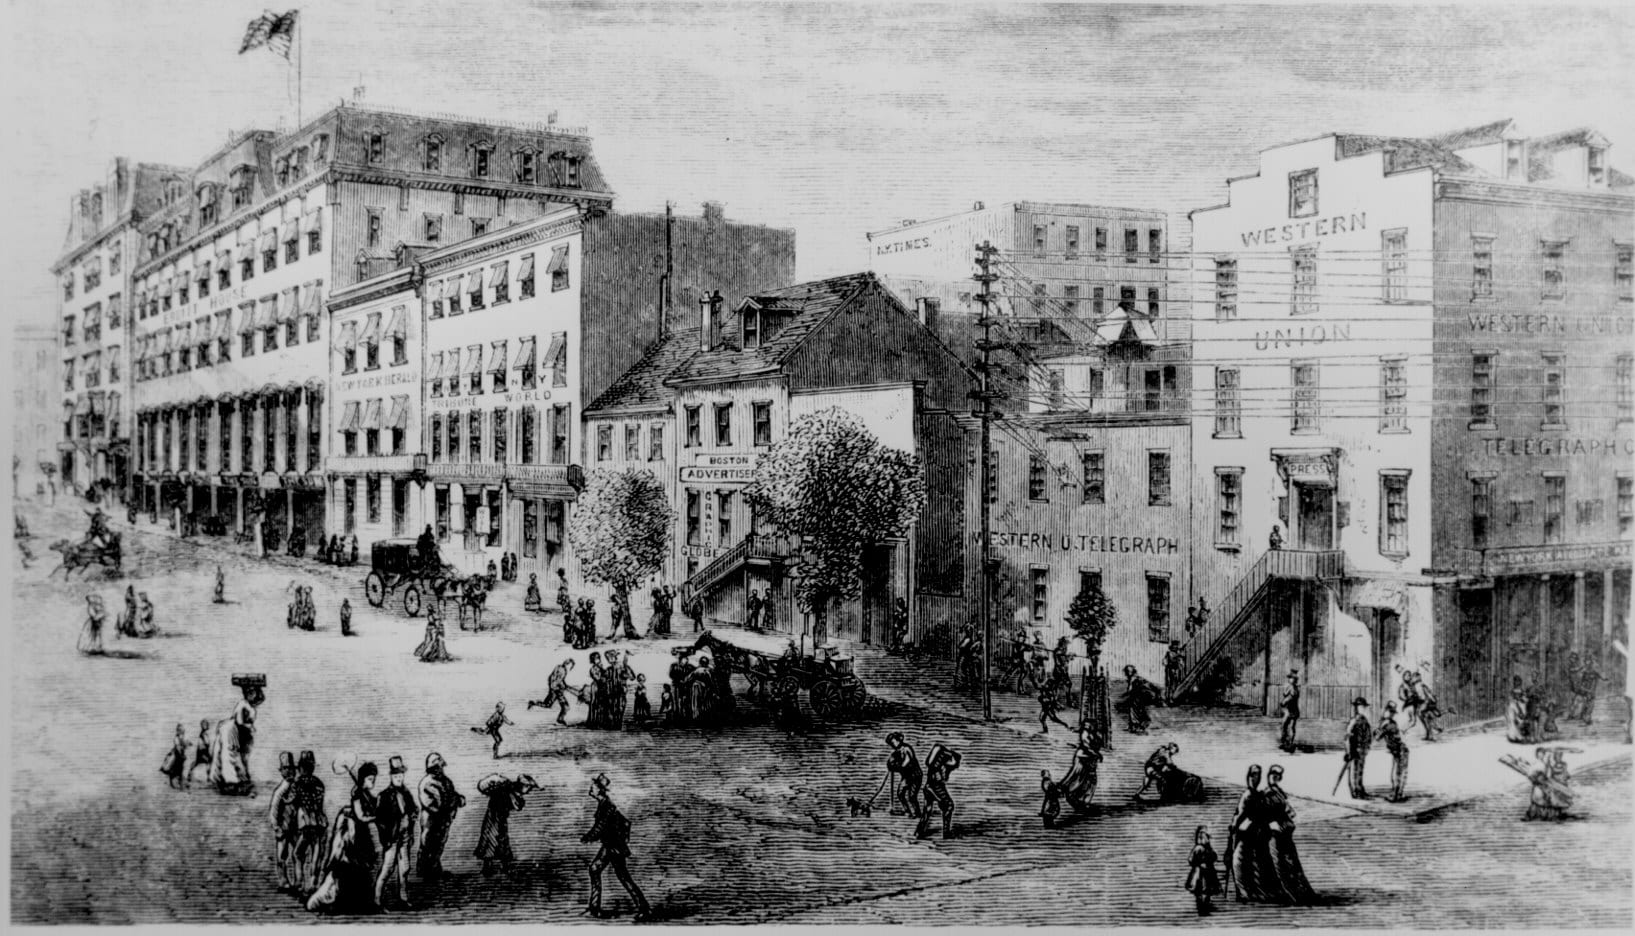 Washington's Newspaper Row in 1874